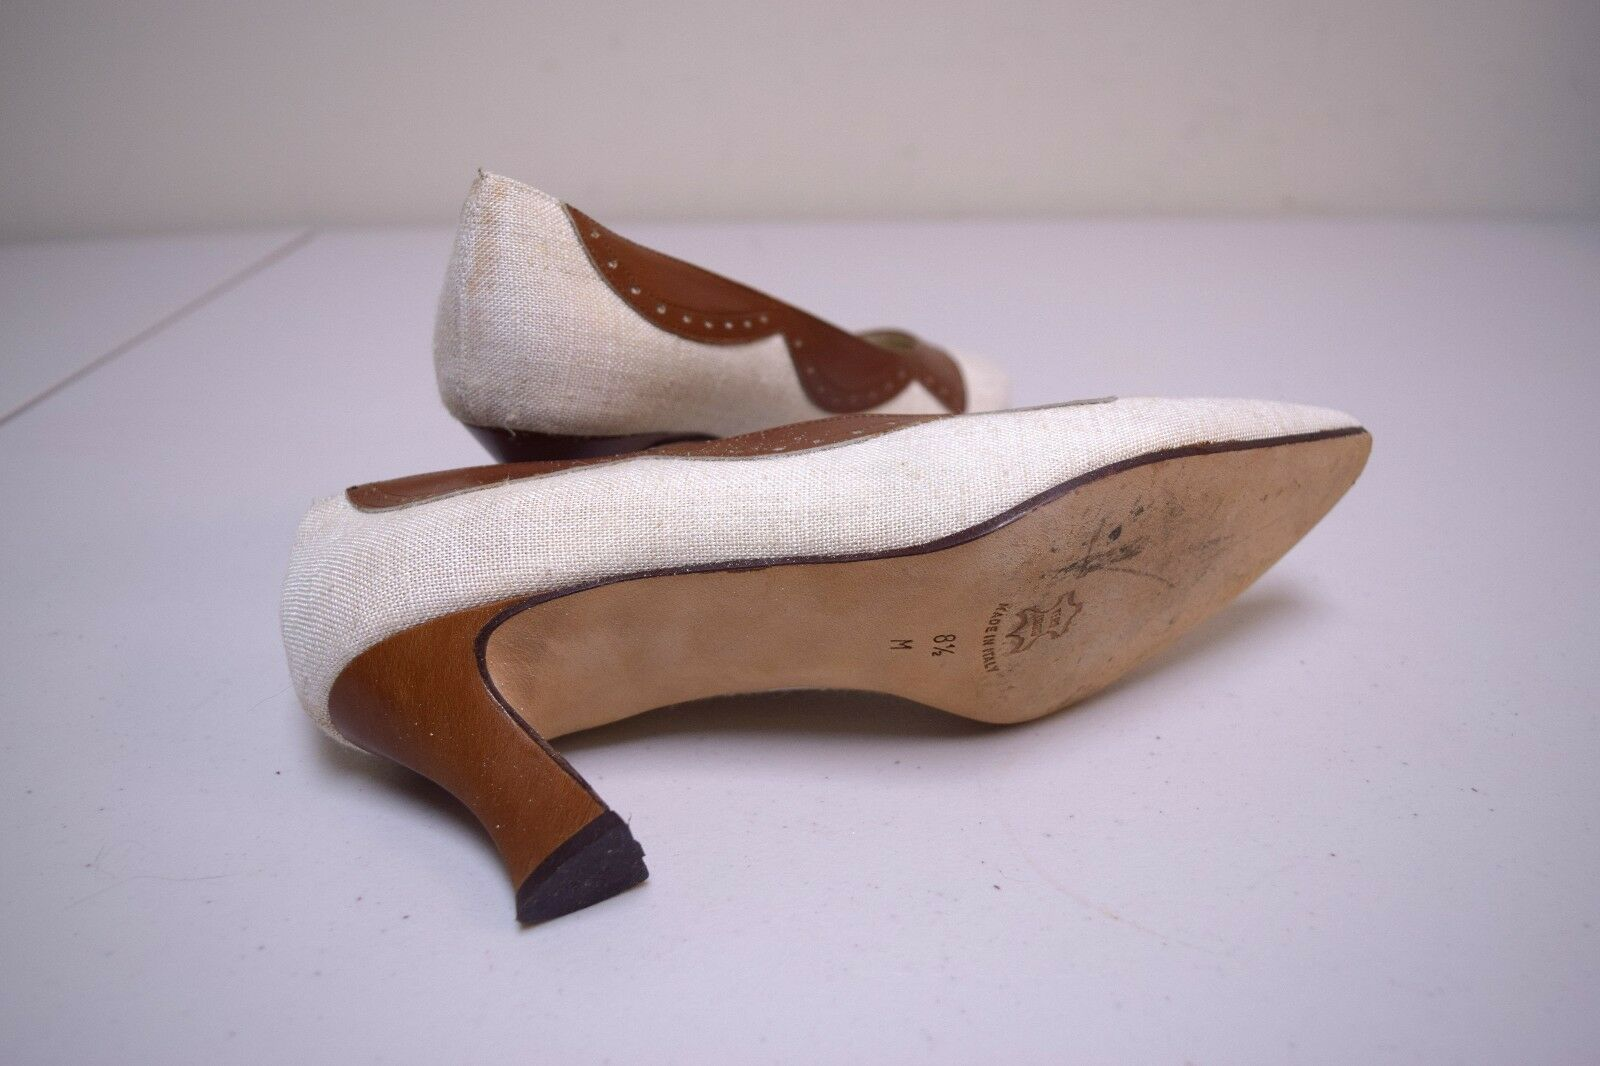 Vintage I MILLER Linen Heels & Leather Spectator Pumps Heels Linen Made in Italy Size 8.5 M c07cce